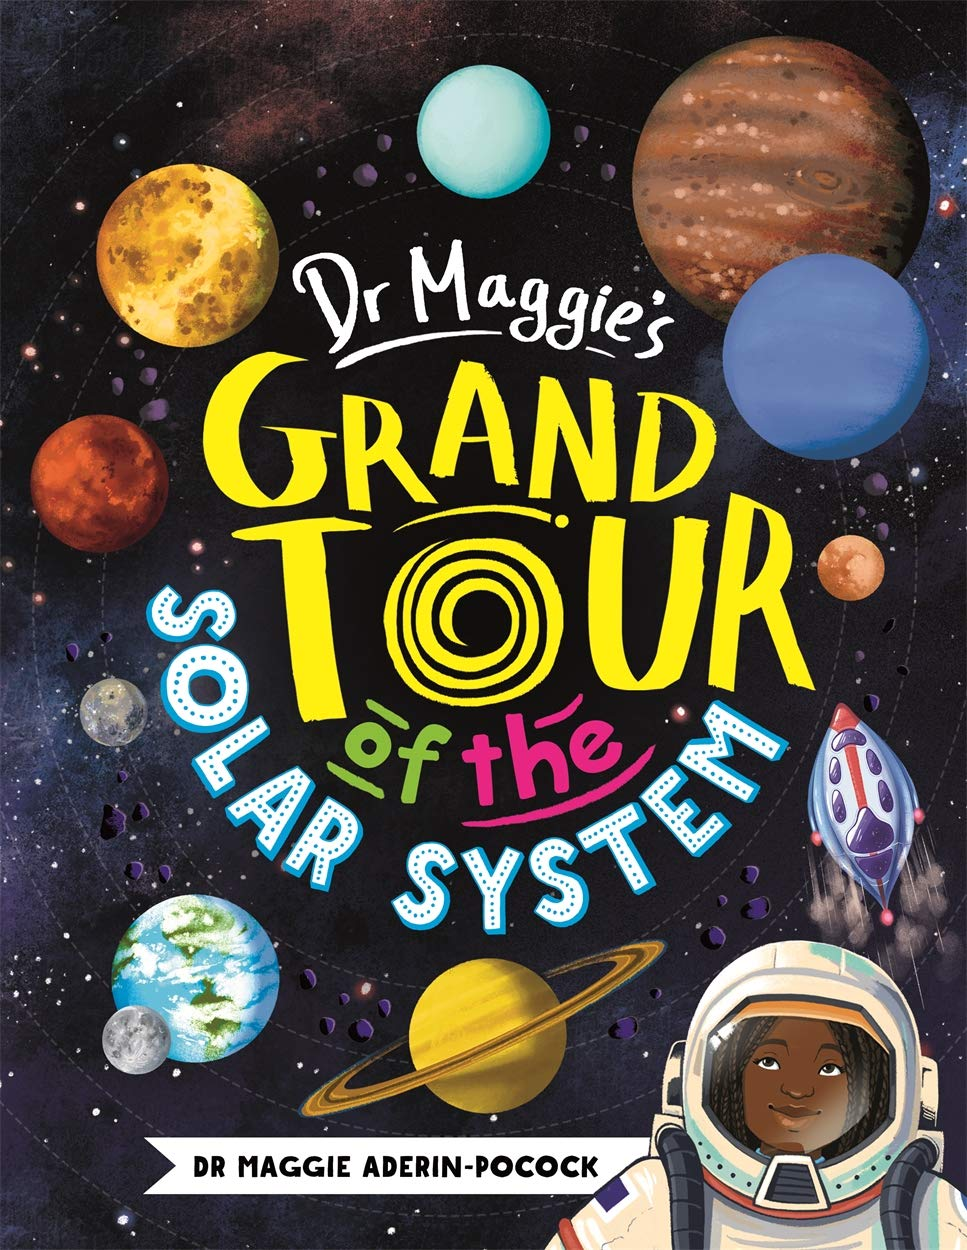 Dr. Maggie's Grand Tour of the Solar System